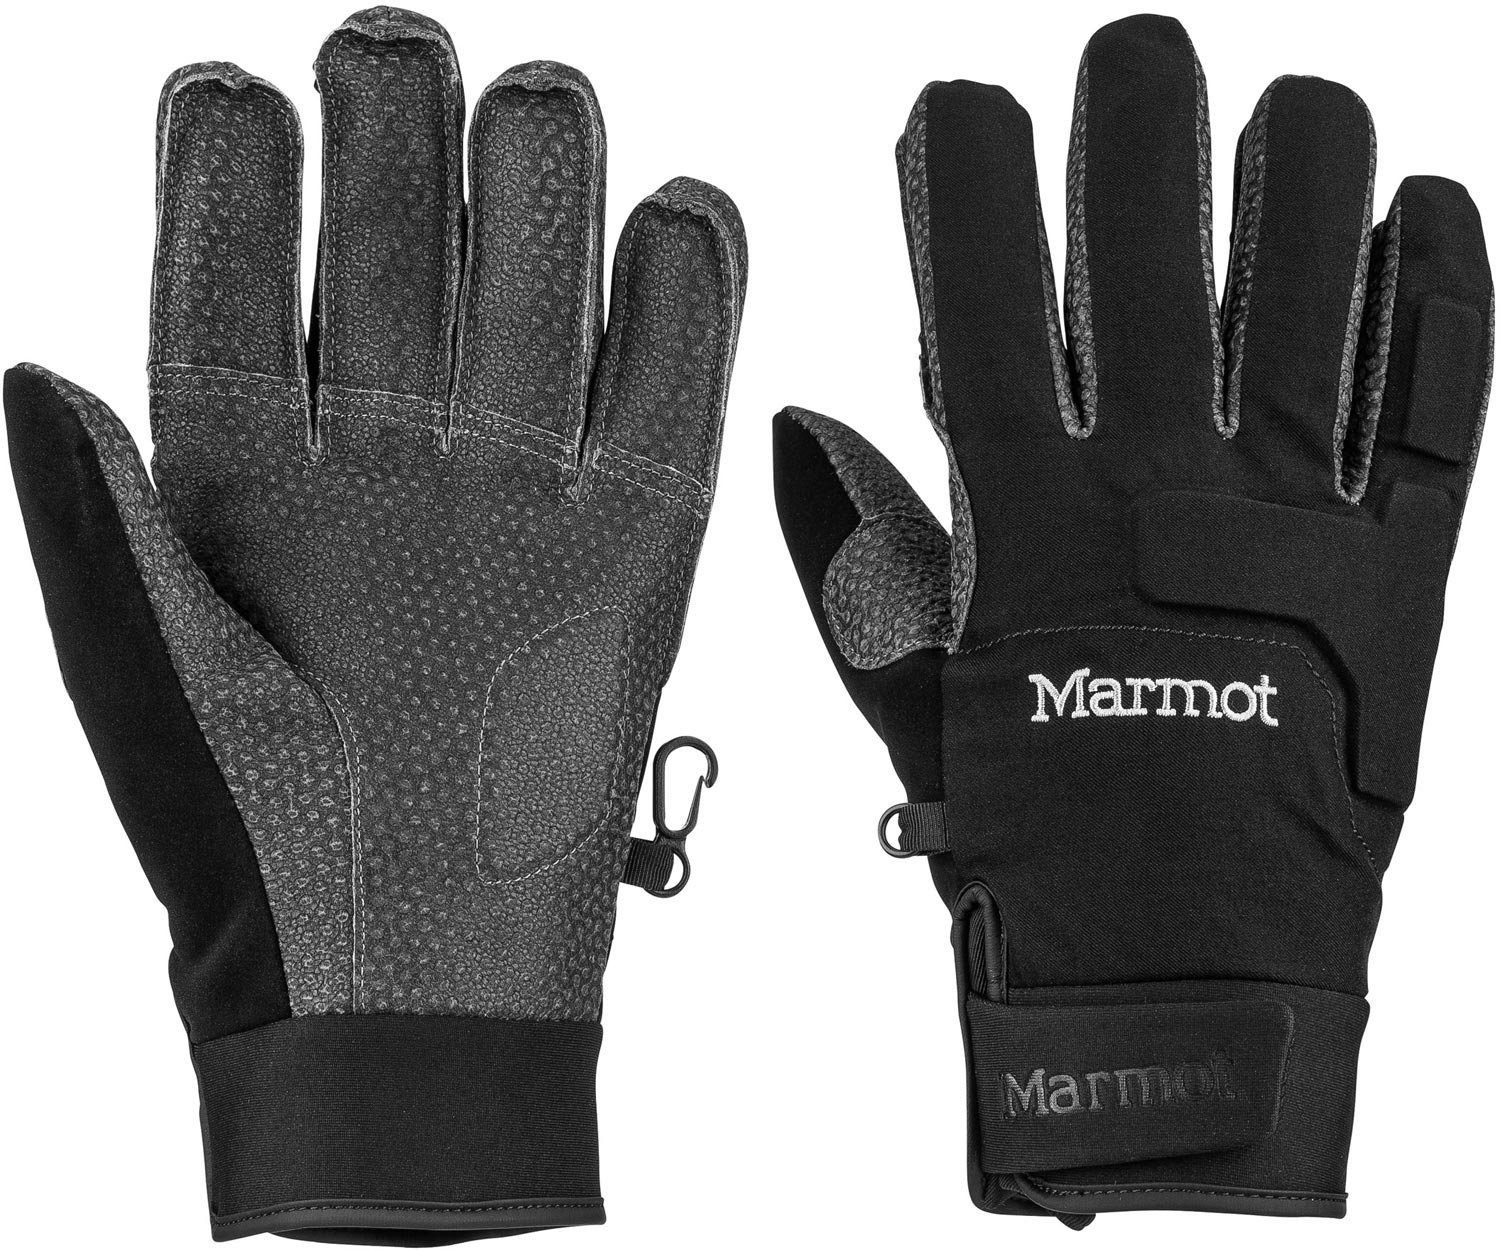 81nDNJi WSL - Marmot XT Gloves, Men, Waterproof & Breathable - great for skiing, biking and climbing